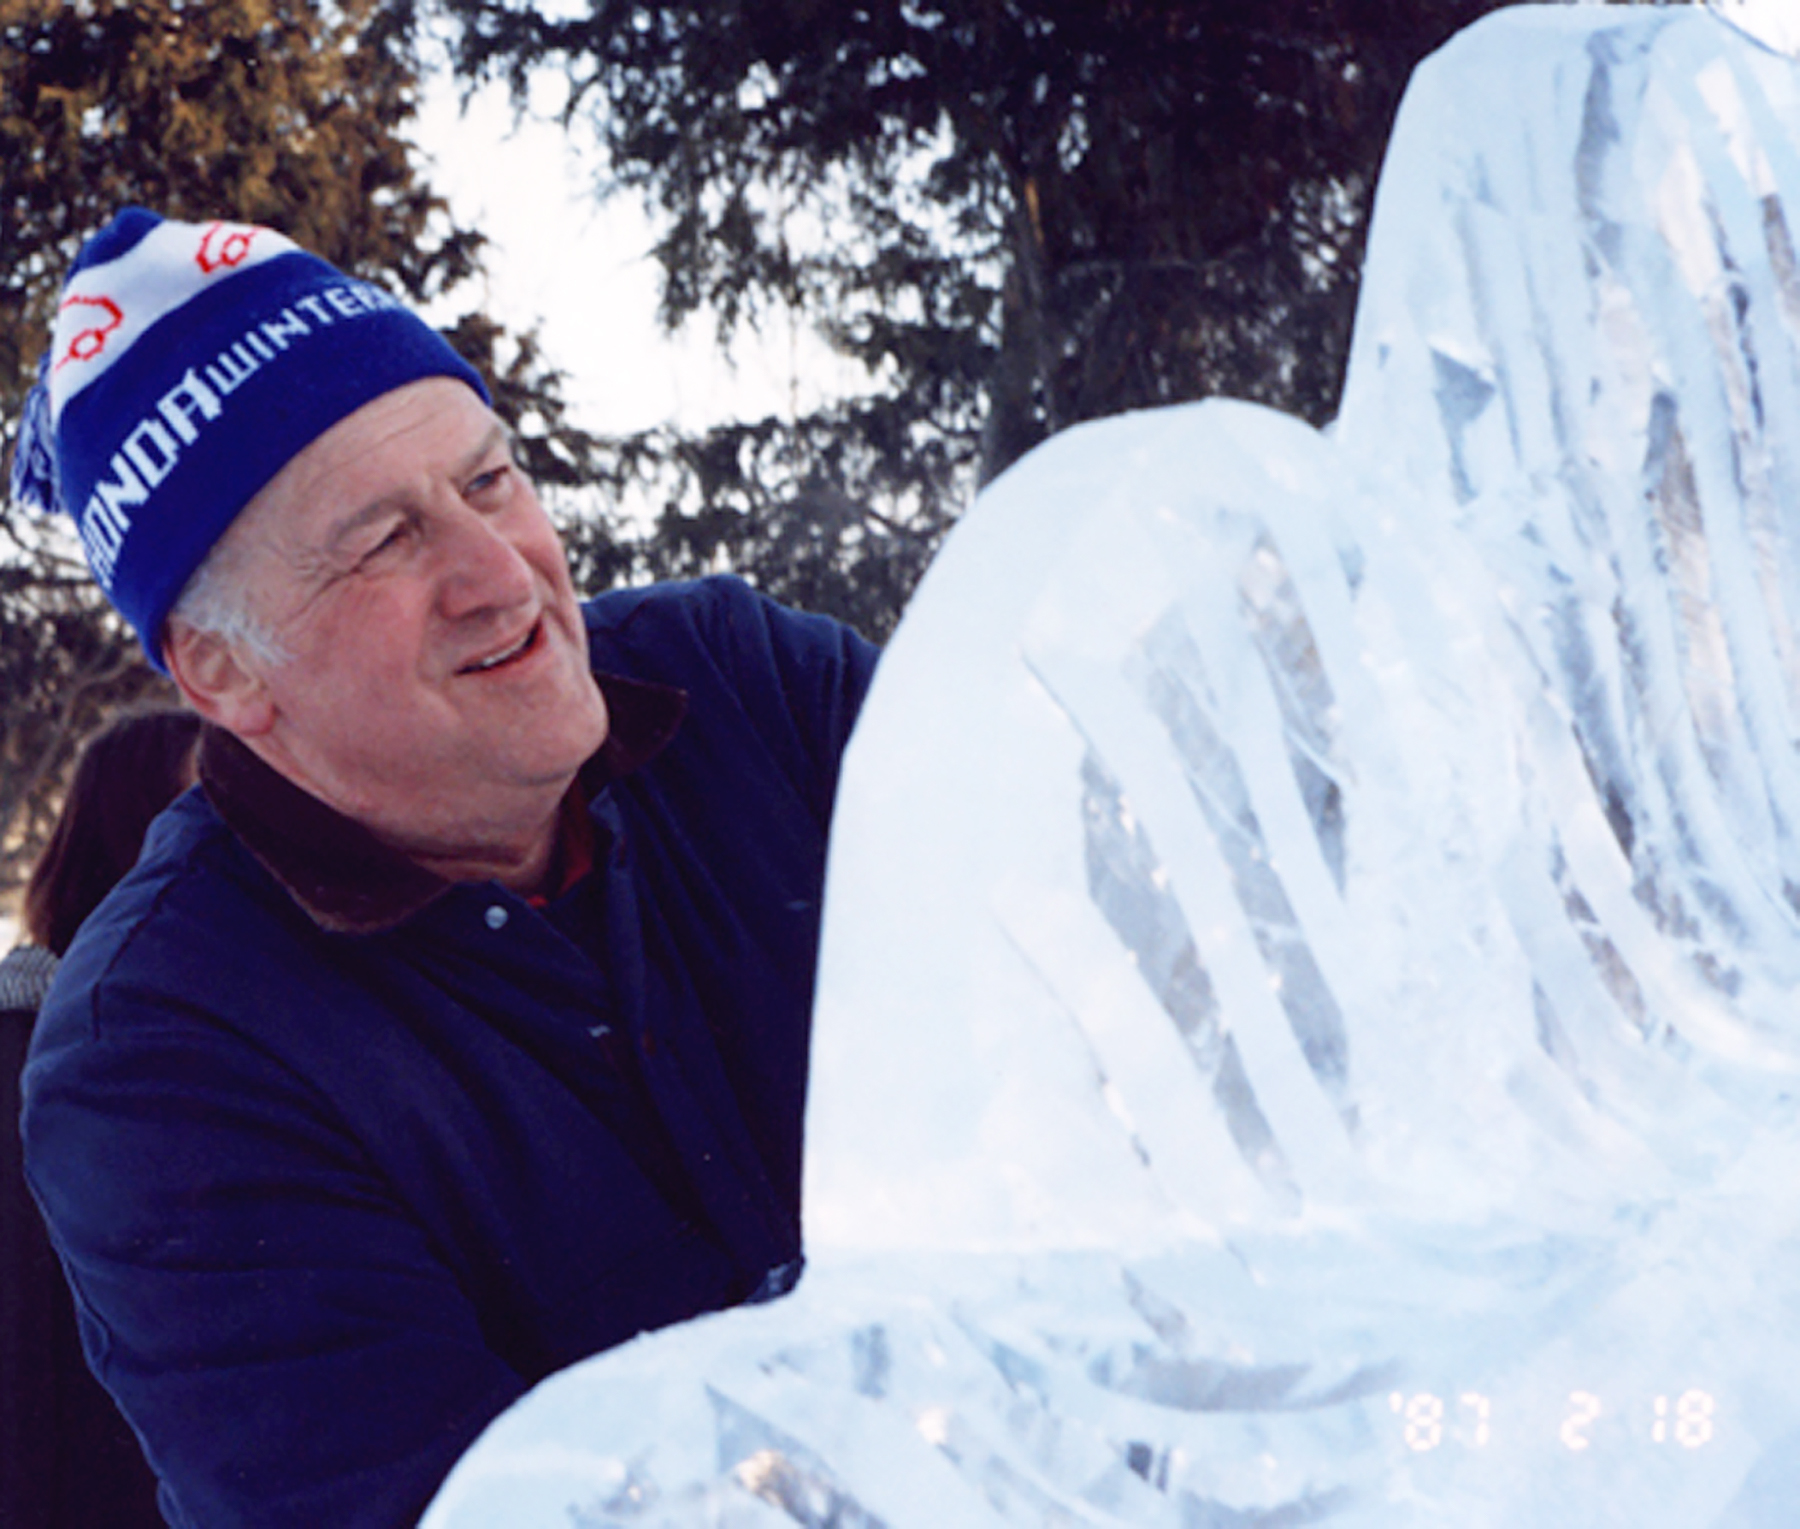 Ausable Bayfield Conservation Dinner To Feature Iceculture